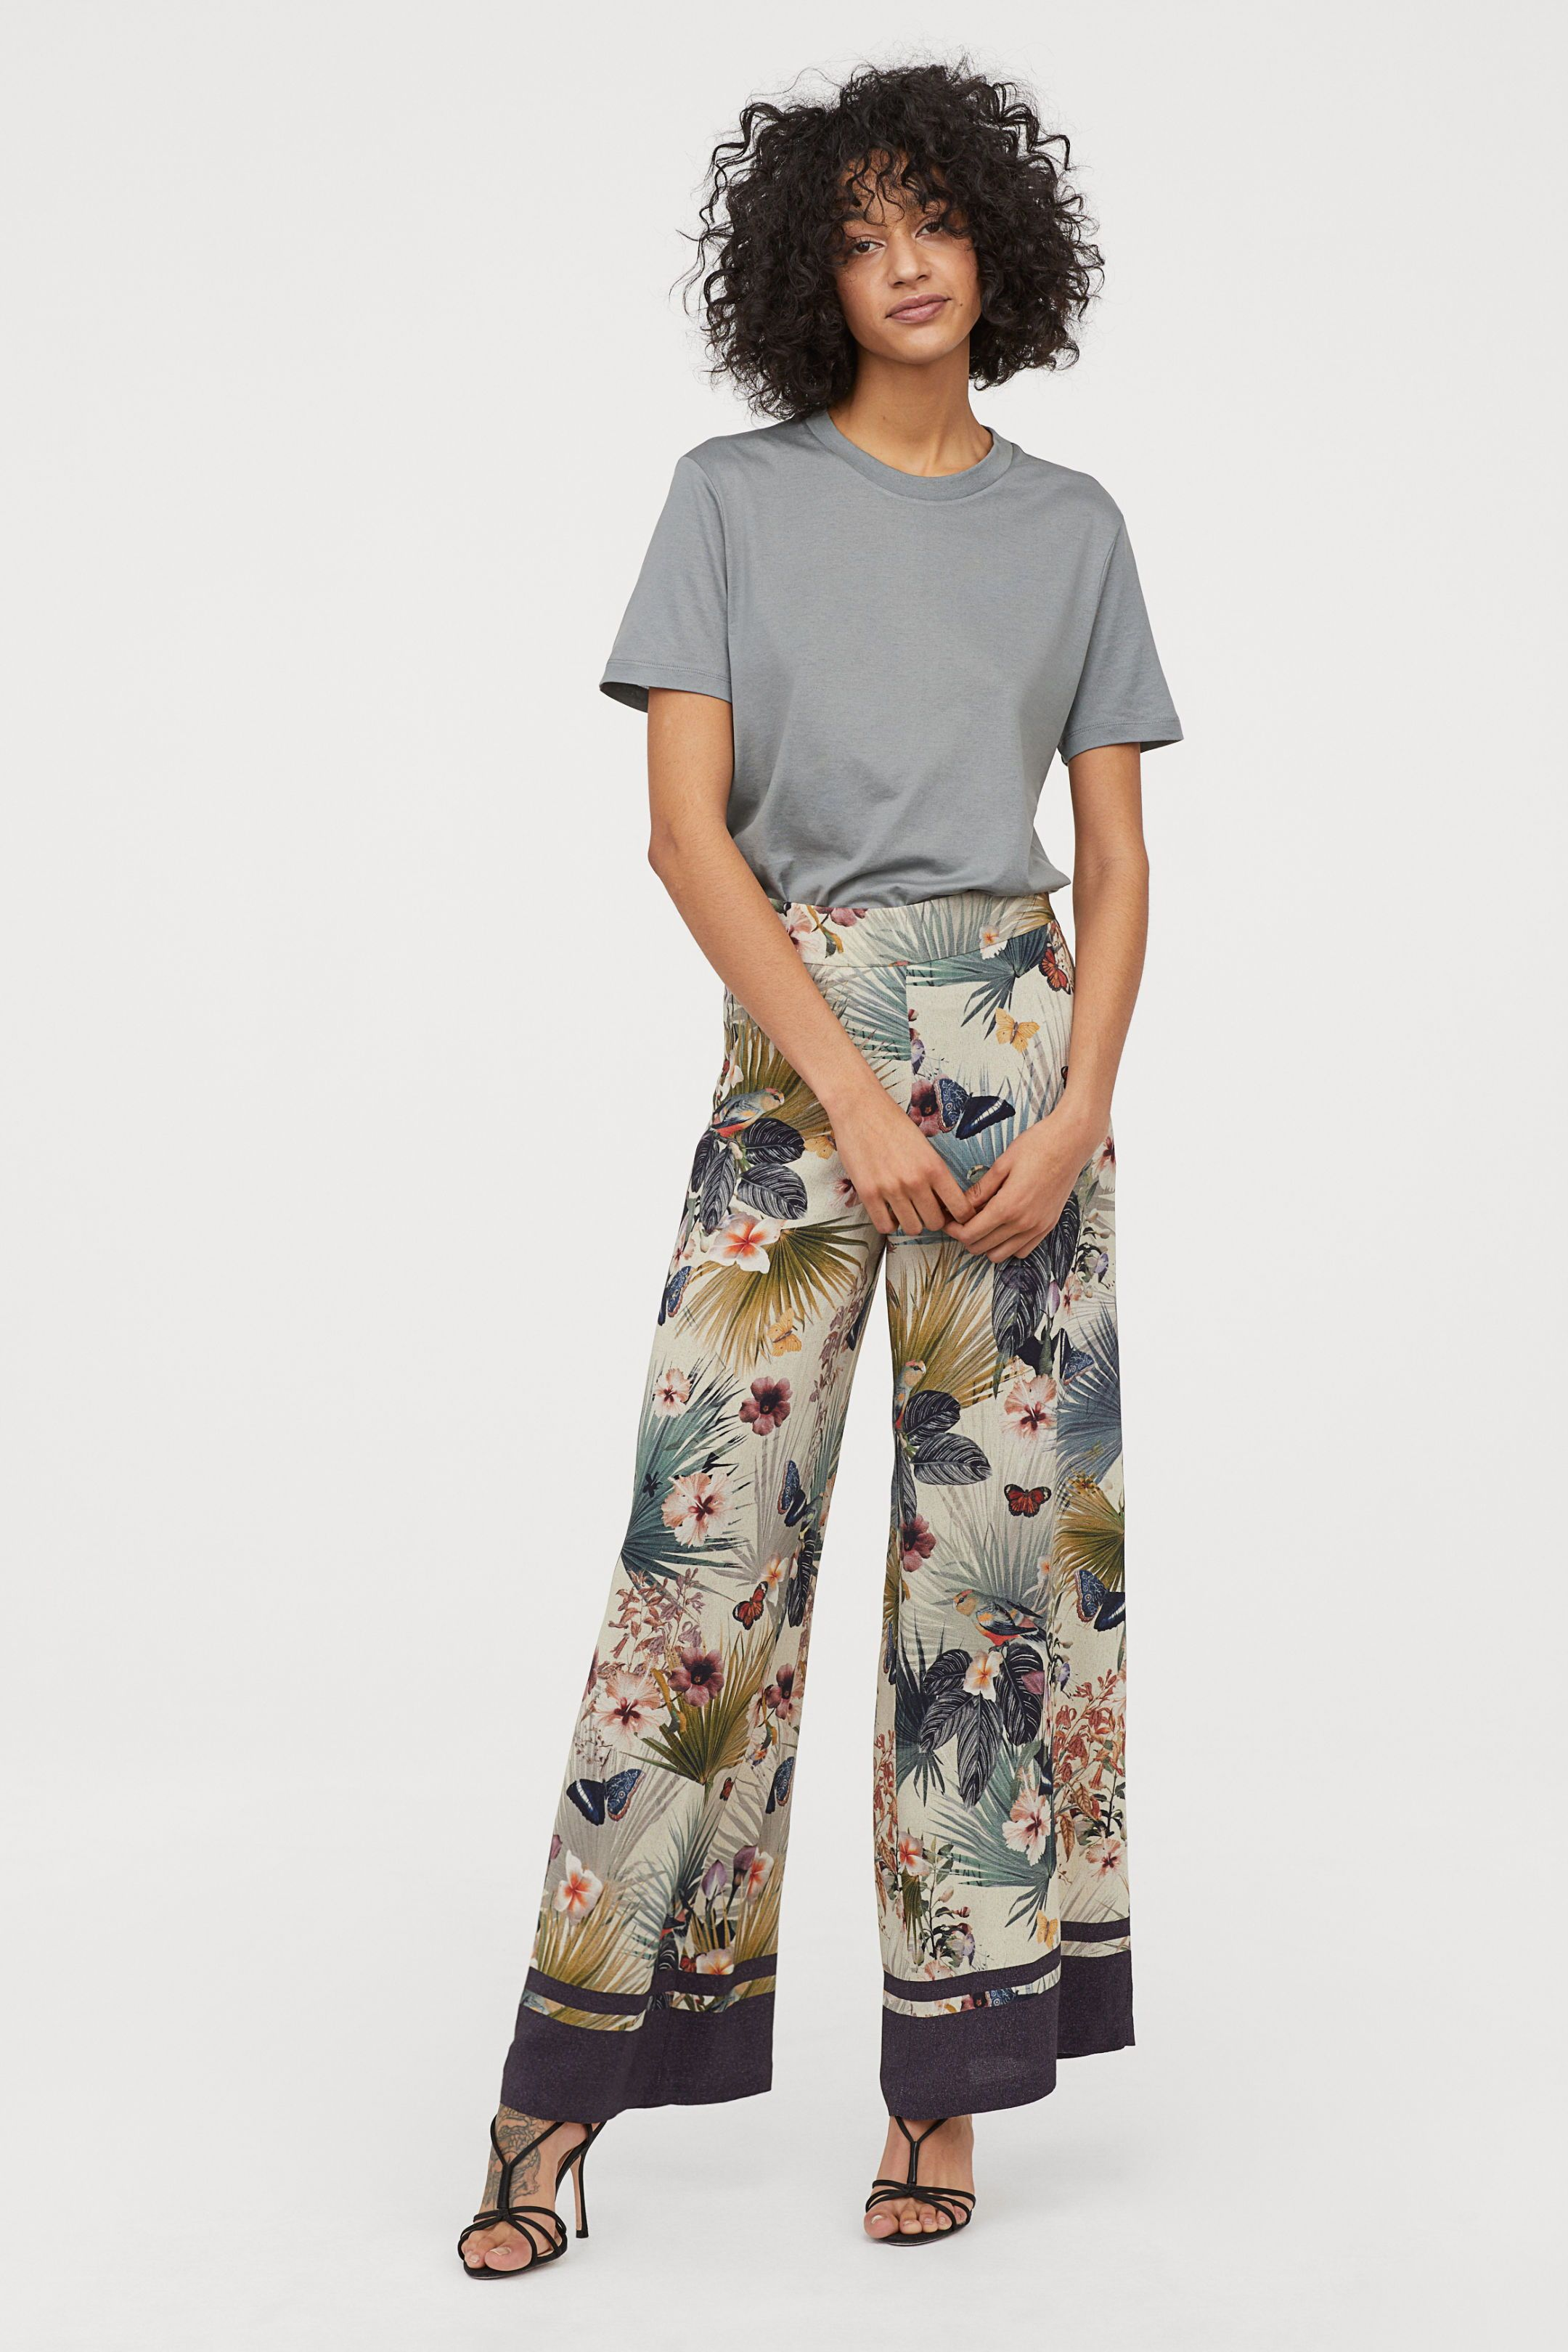 Floral Wide Legged Pants Pants In Woven Viscose Fabric With A Printed Pattern High Waist Concealed Side Zip And Wide Trousers Batik Fashion Wide Leg Pants